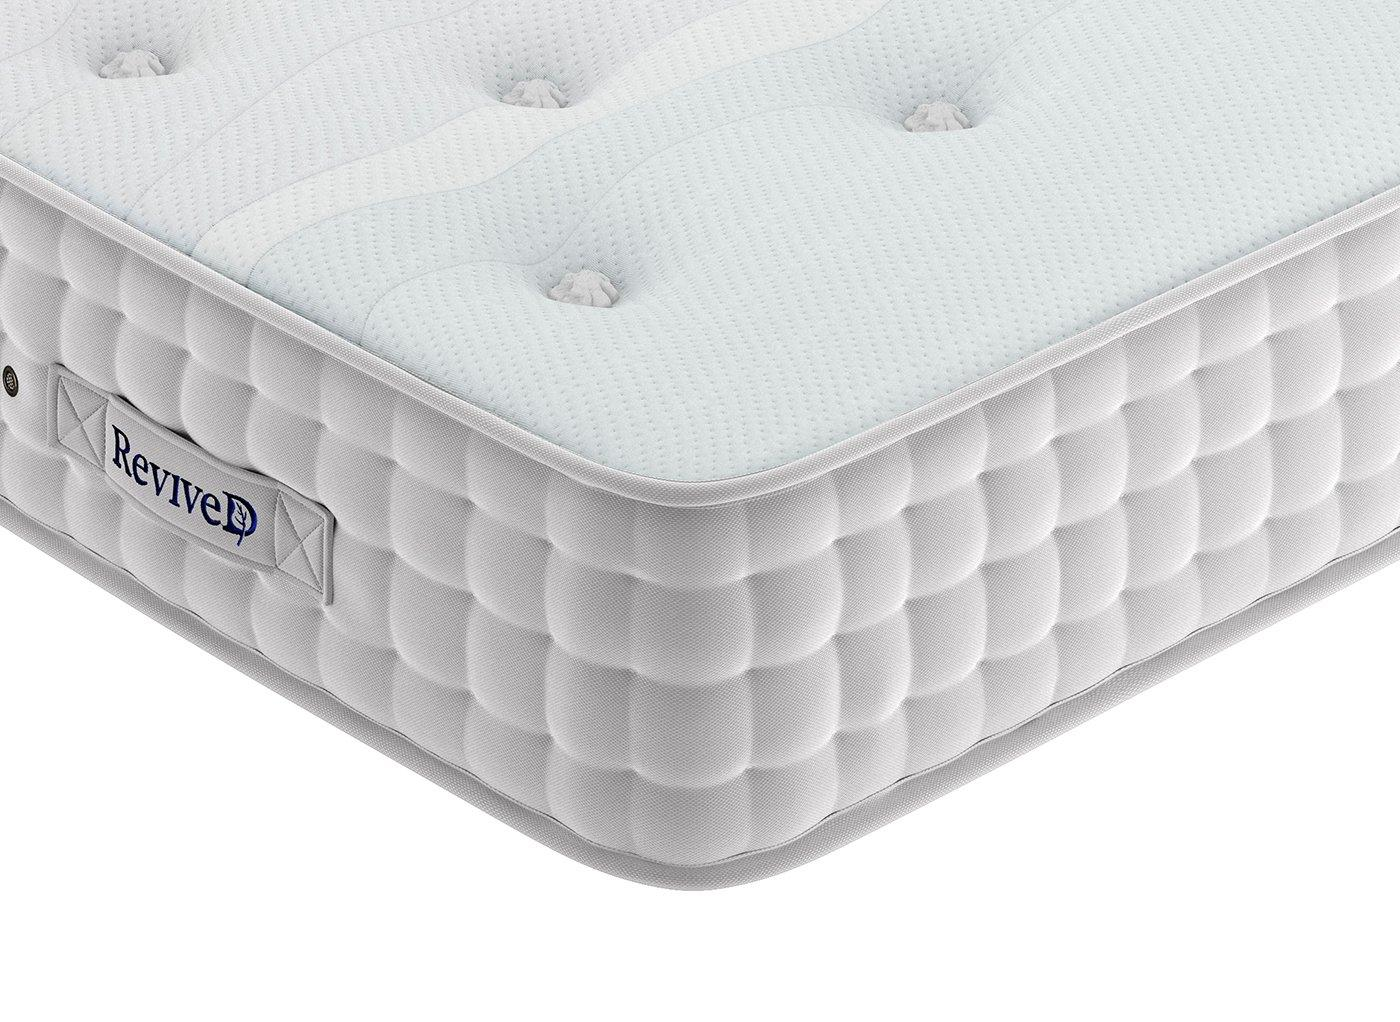 revived-cove-pocket-sprung-mattress